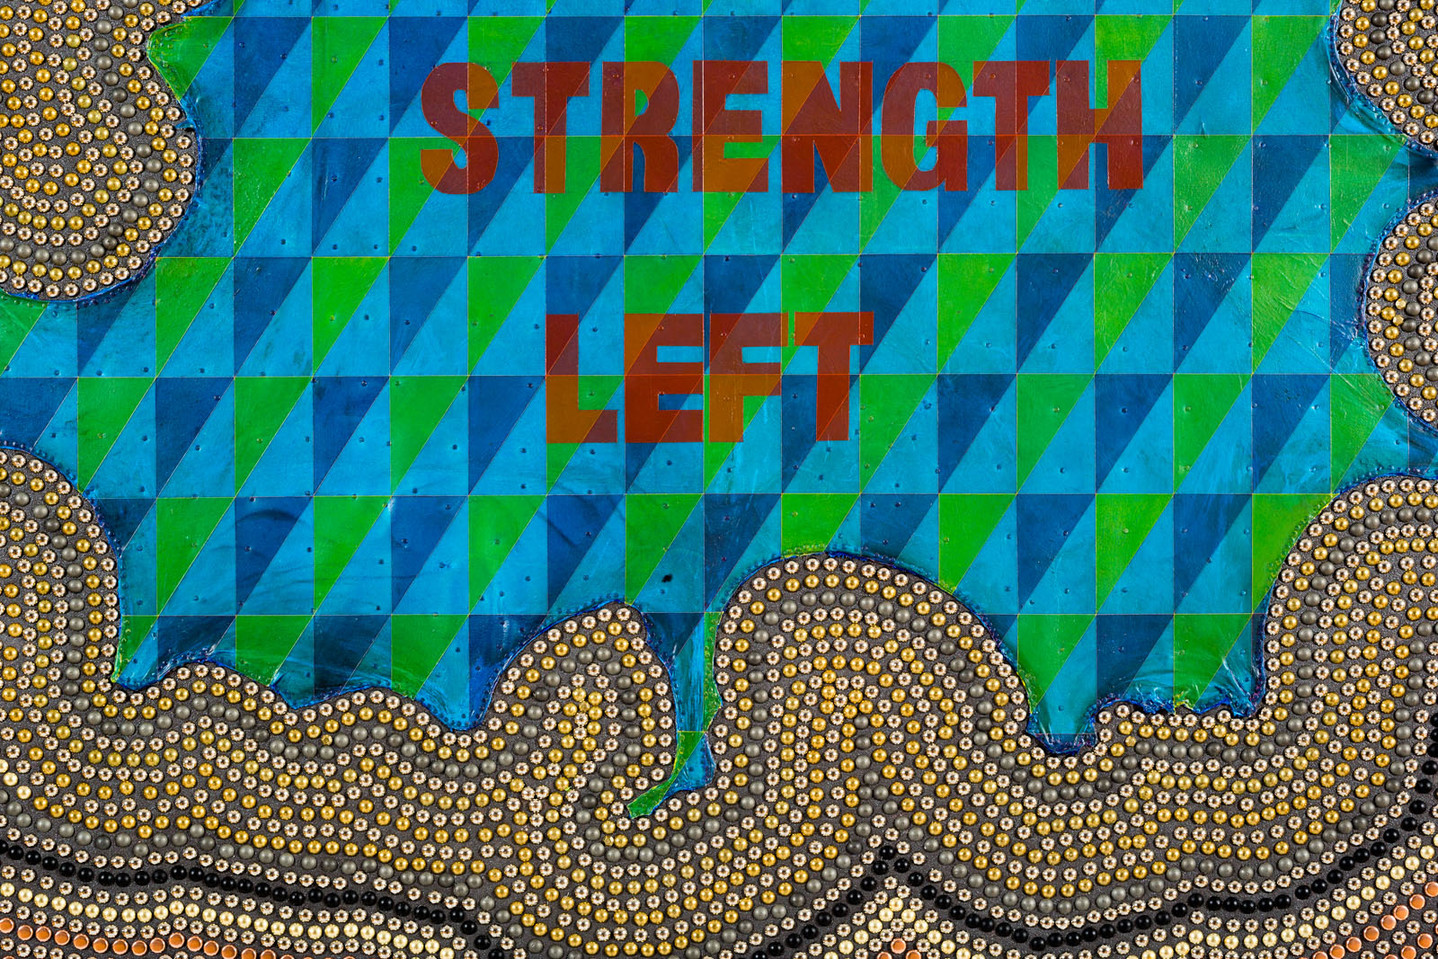 I HAVE STRENGTH LEFT Rawhide, acrylic, graphite, metal tacks, canvas, over wood panel